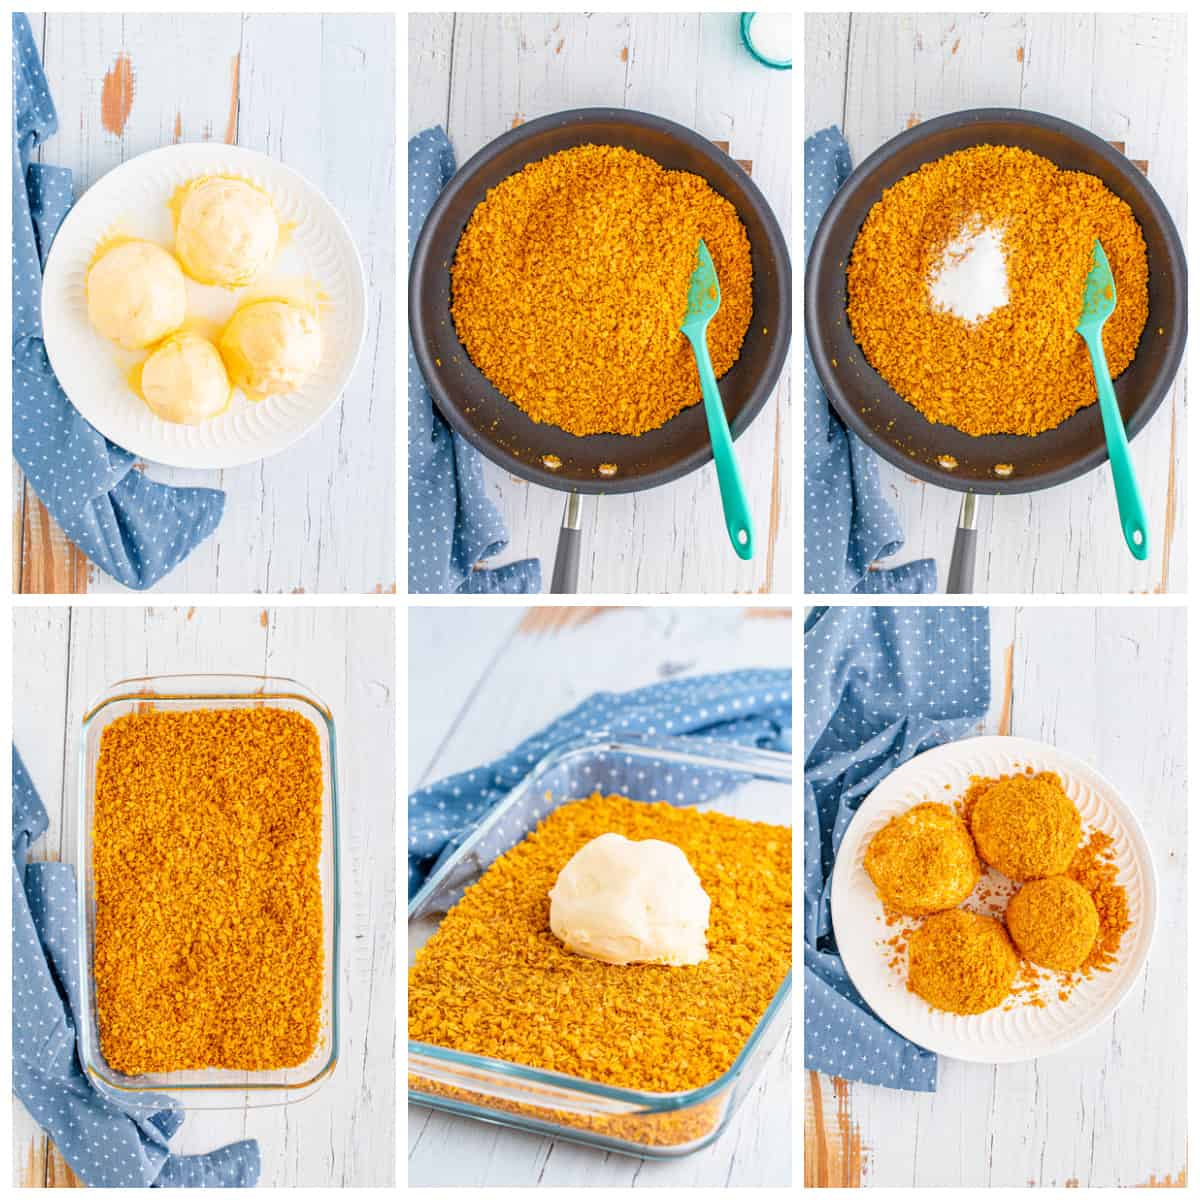 Step by step photos on how to make a Fried Ice Cream Recipe